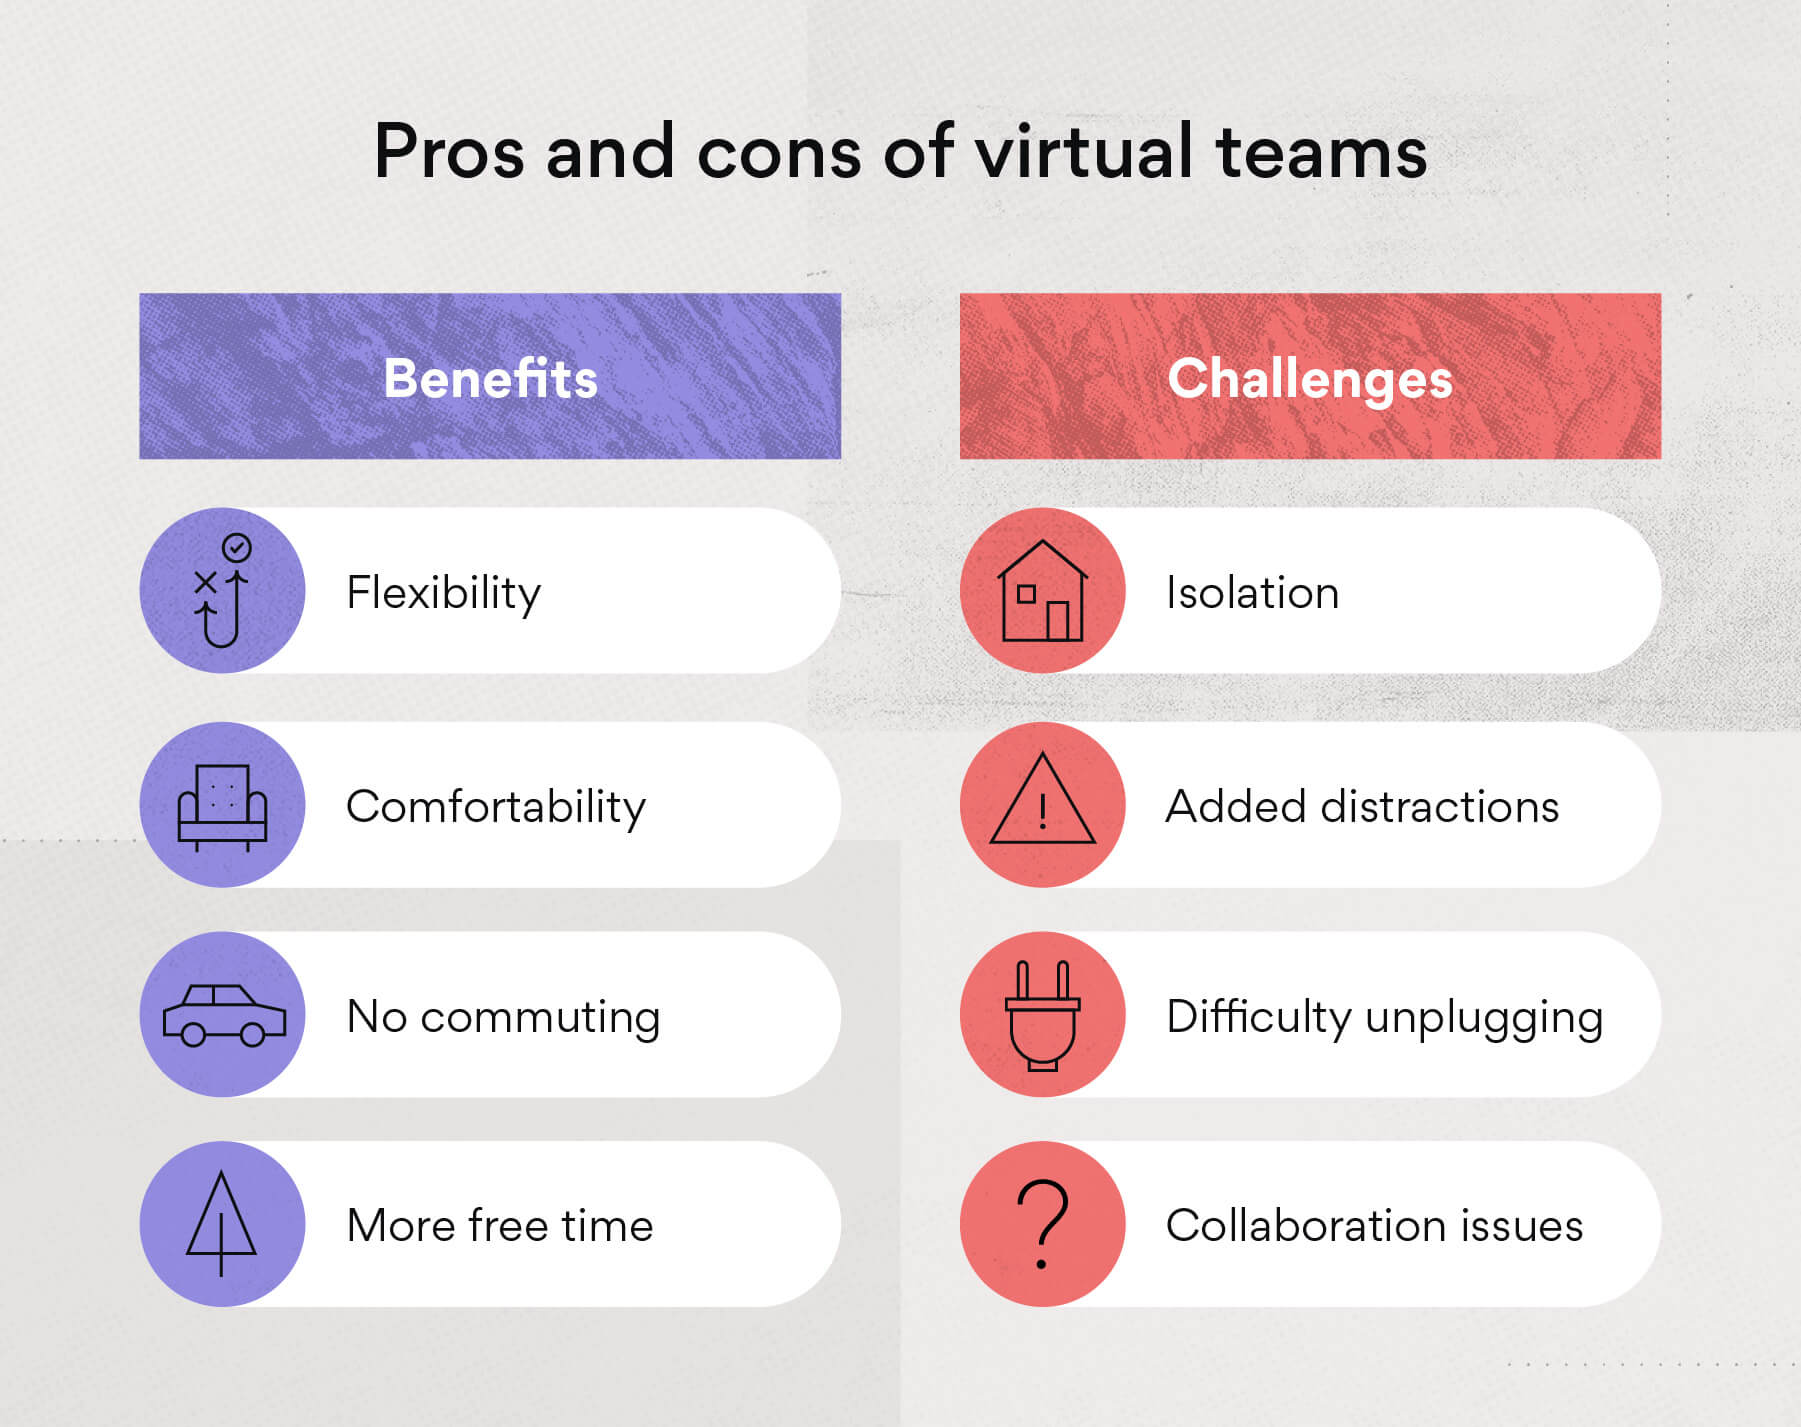 Benefits and challenges of virtual teams